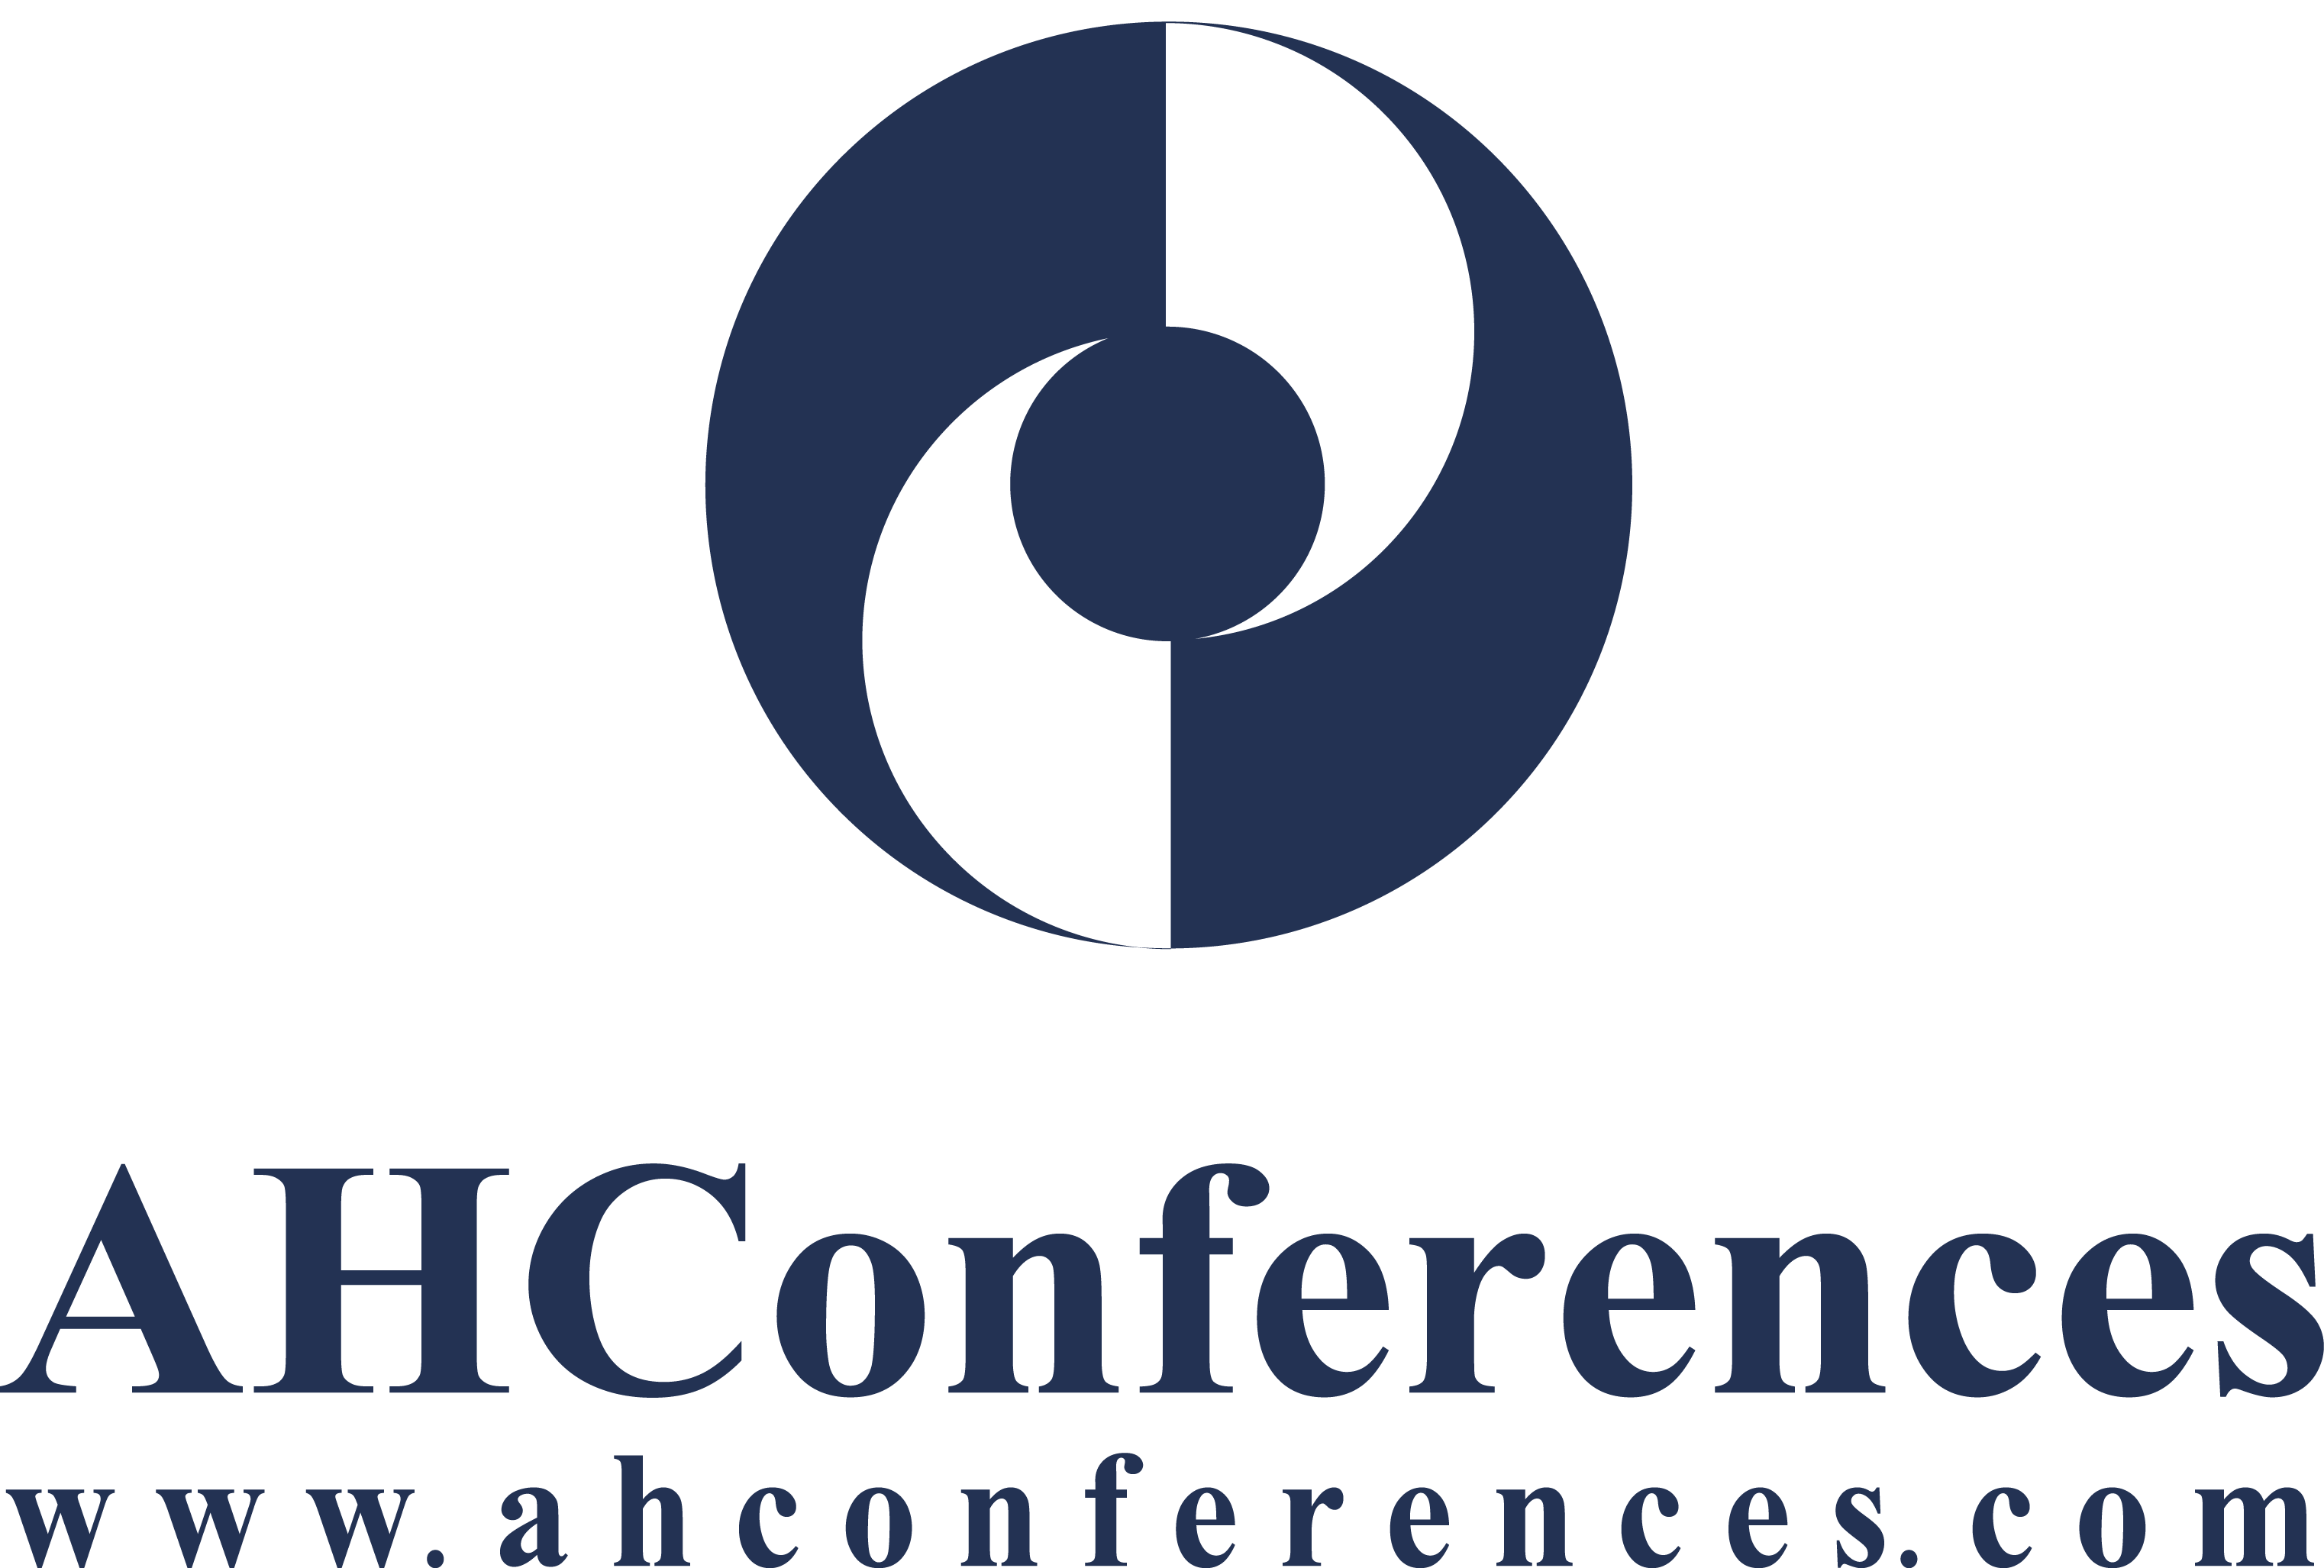 AHconferences